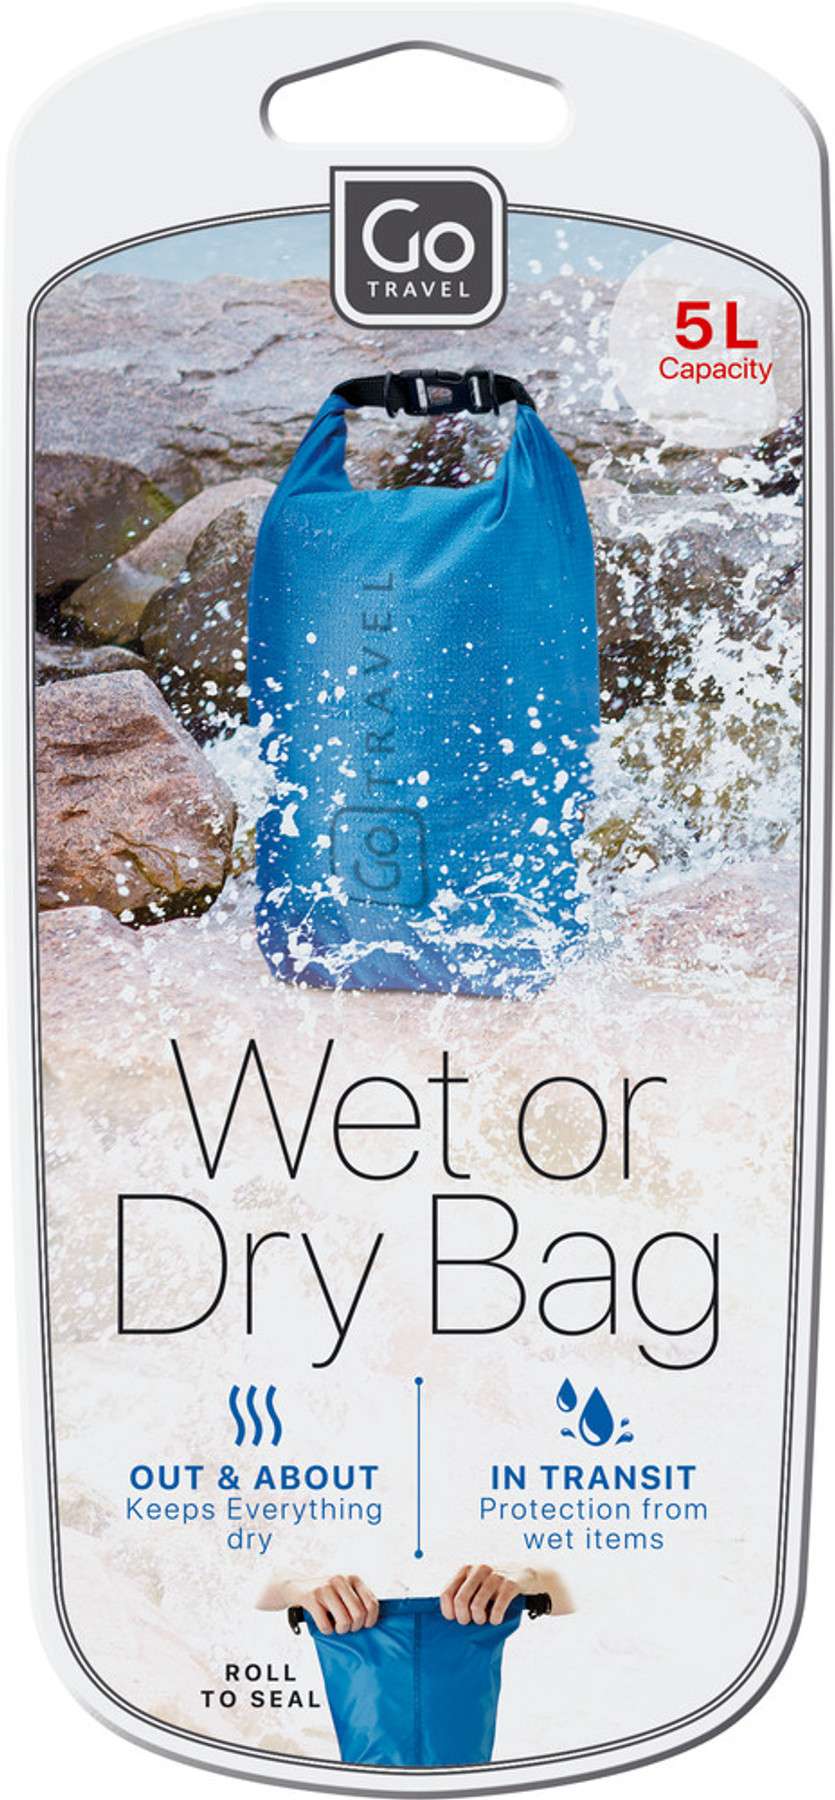 Wet or Dry Bag